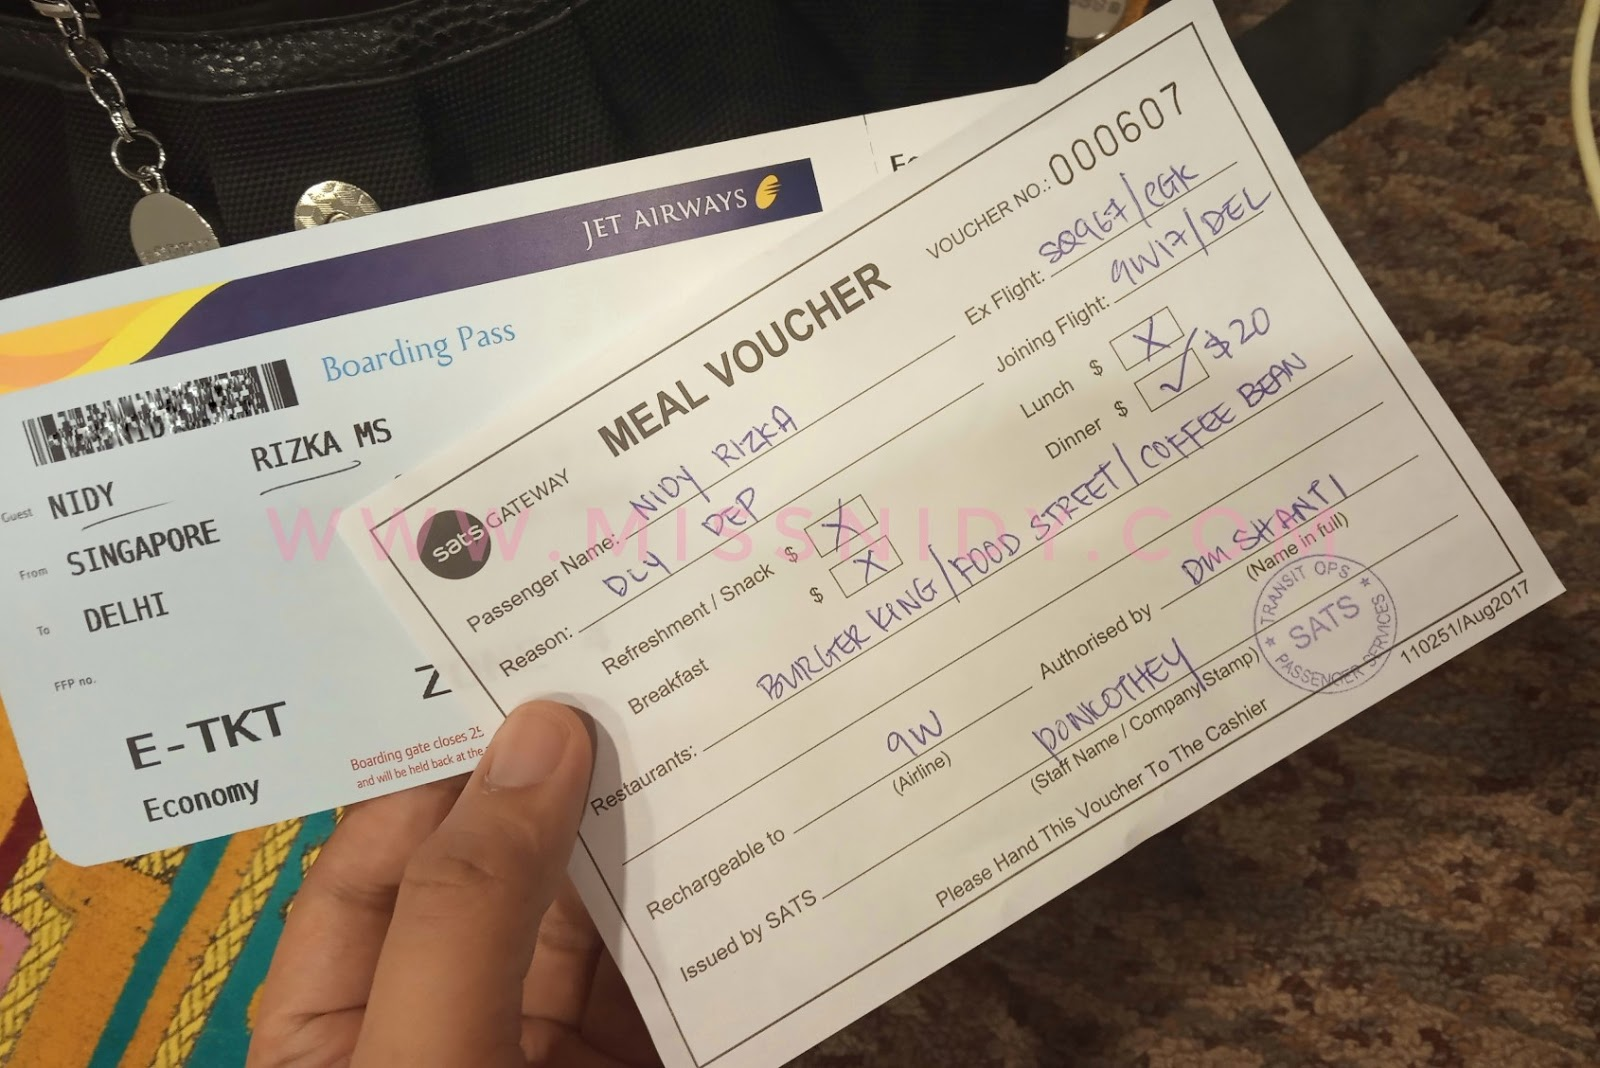 voucher kompensasi pesawat jet airways delay di singapura